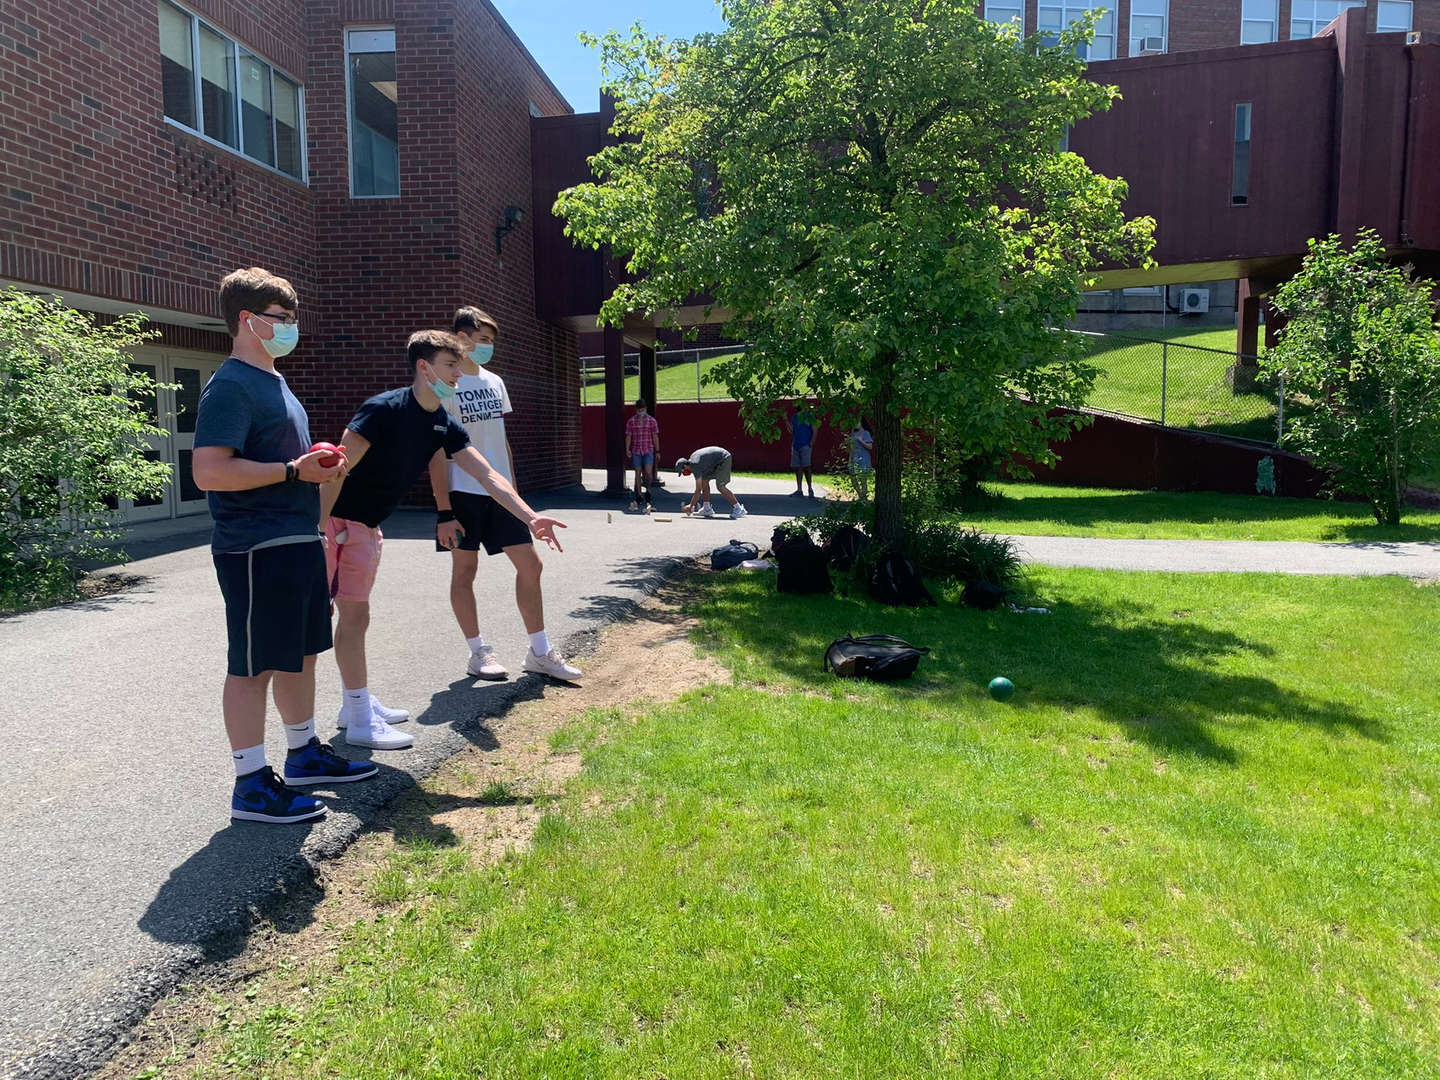 Students playing lawn games outside